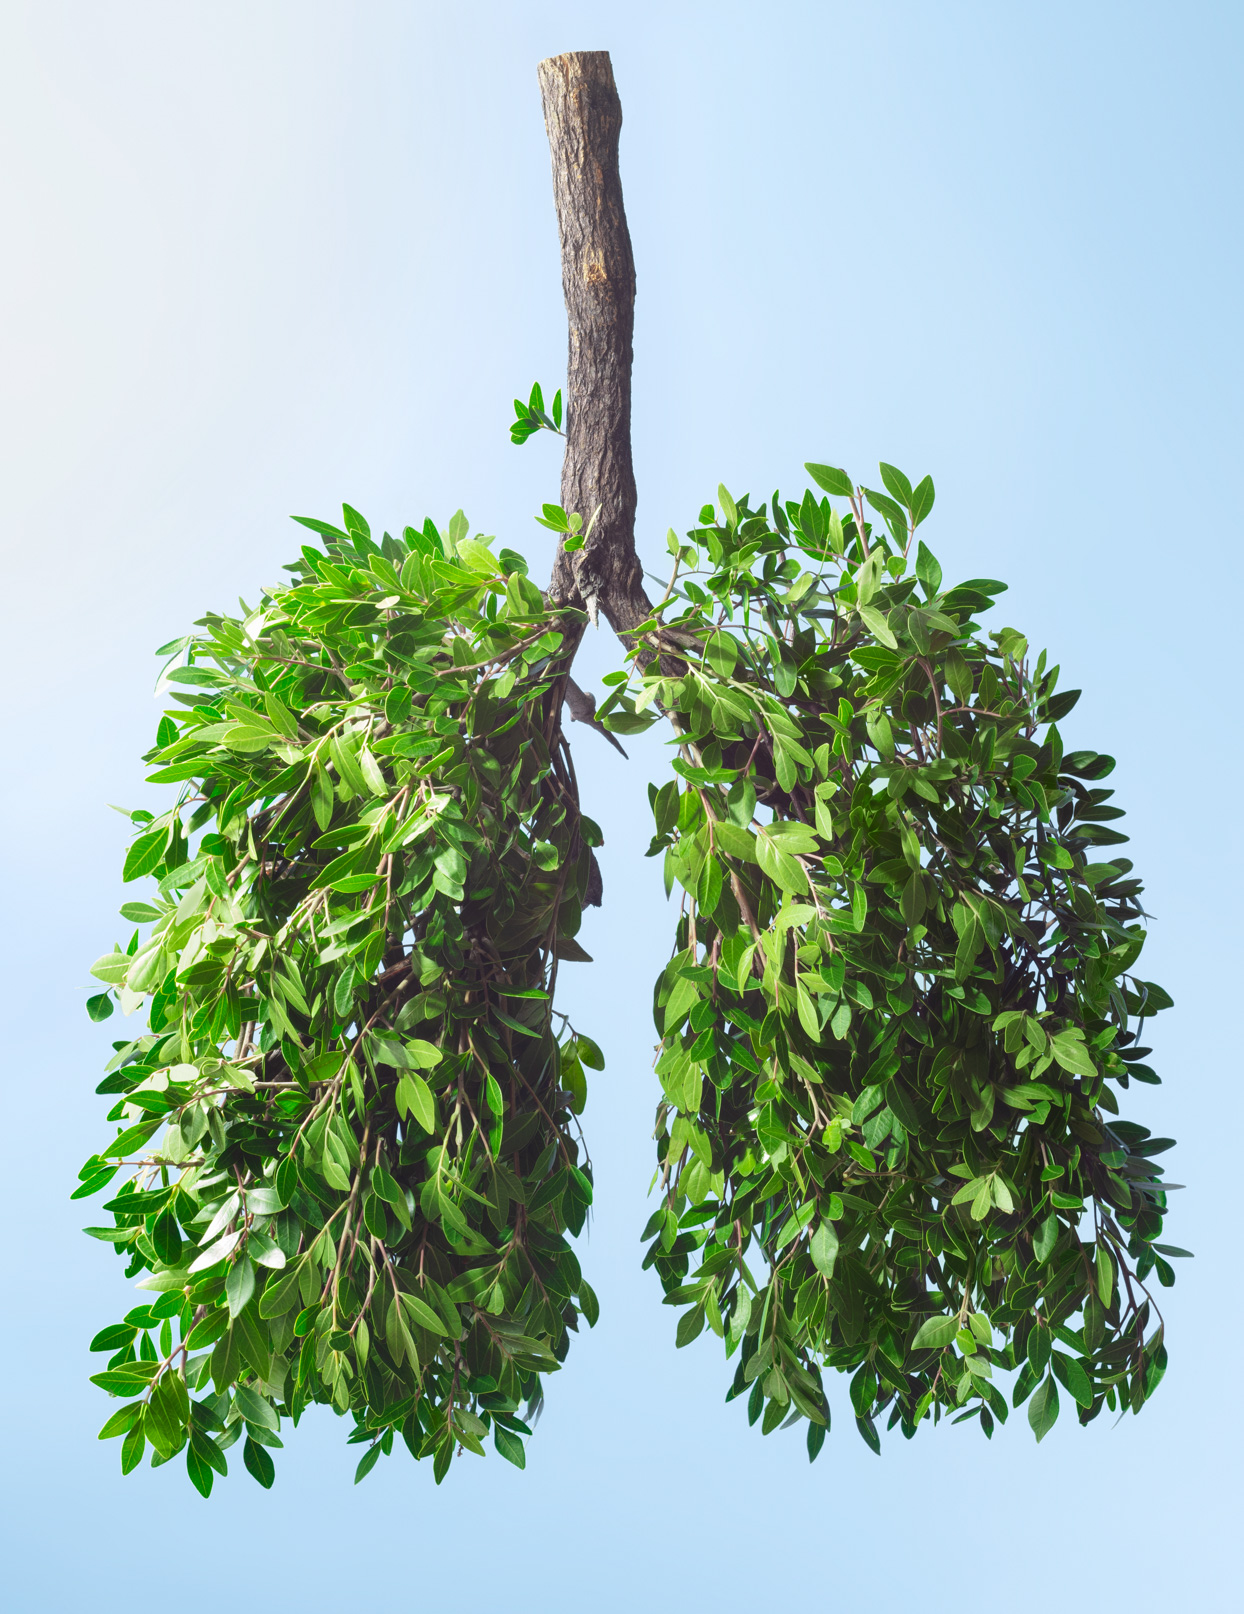 lung shaped tree